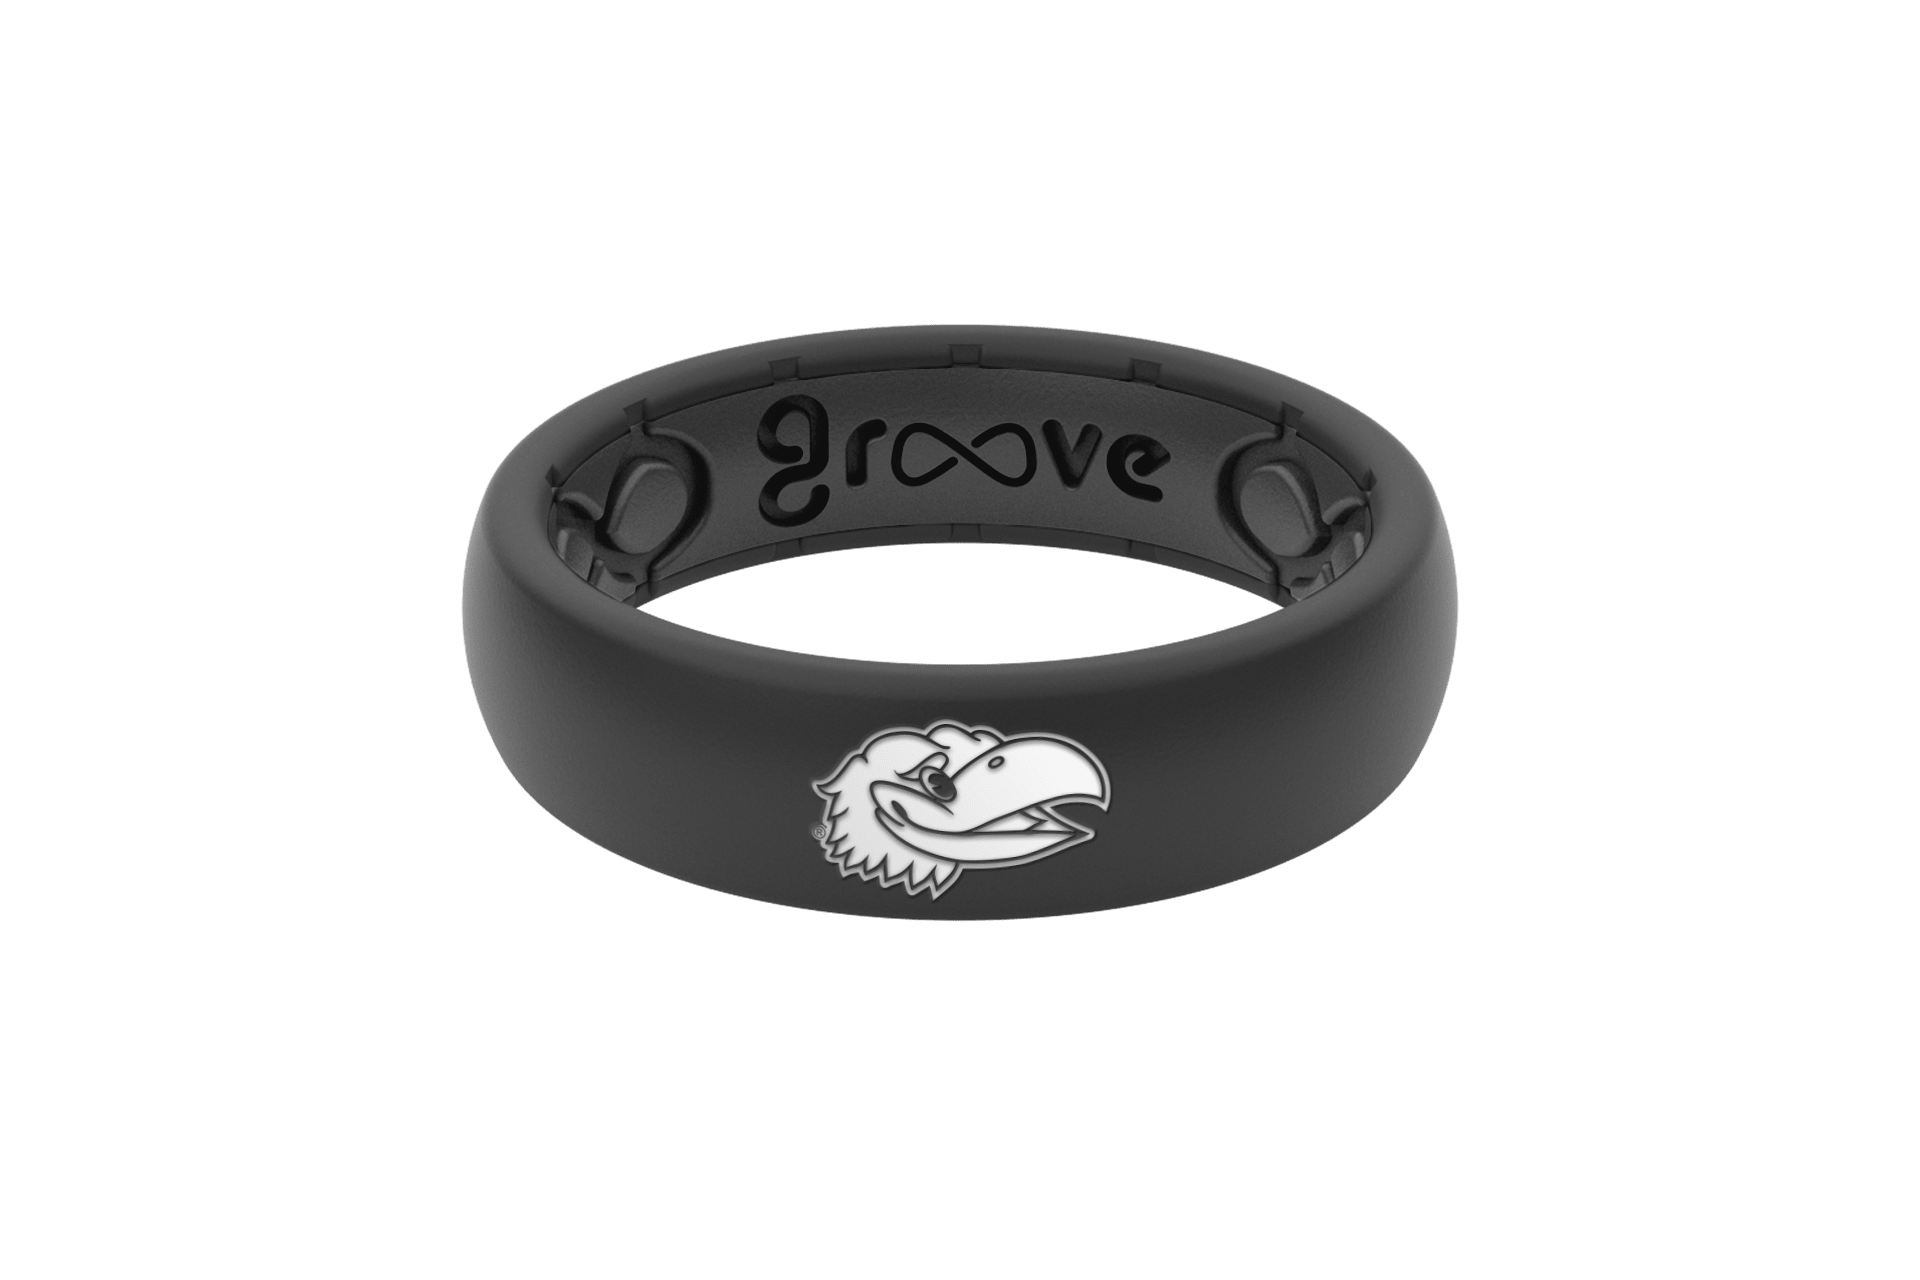 Thin College Kansas - Groove Life Silicone Wedding Rings